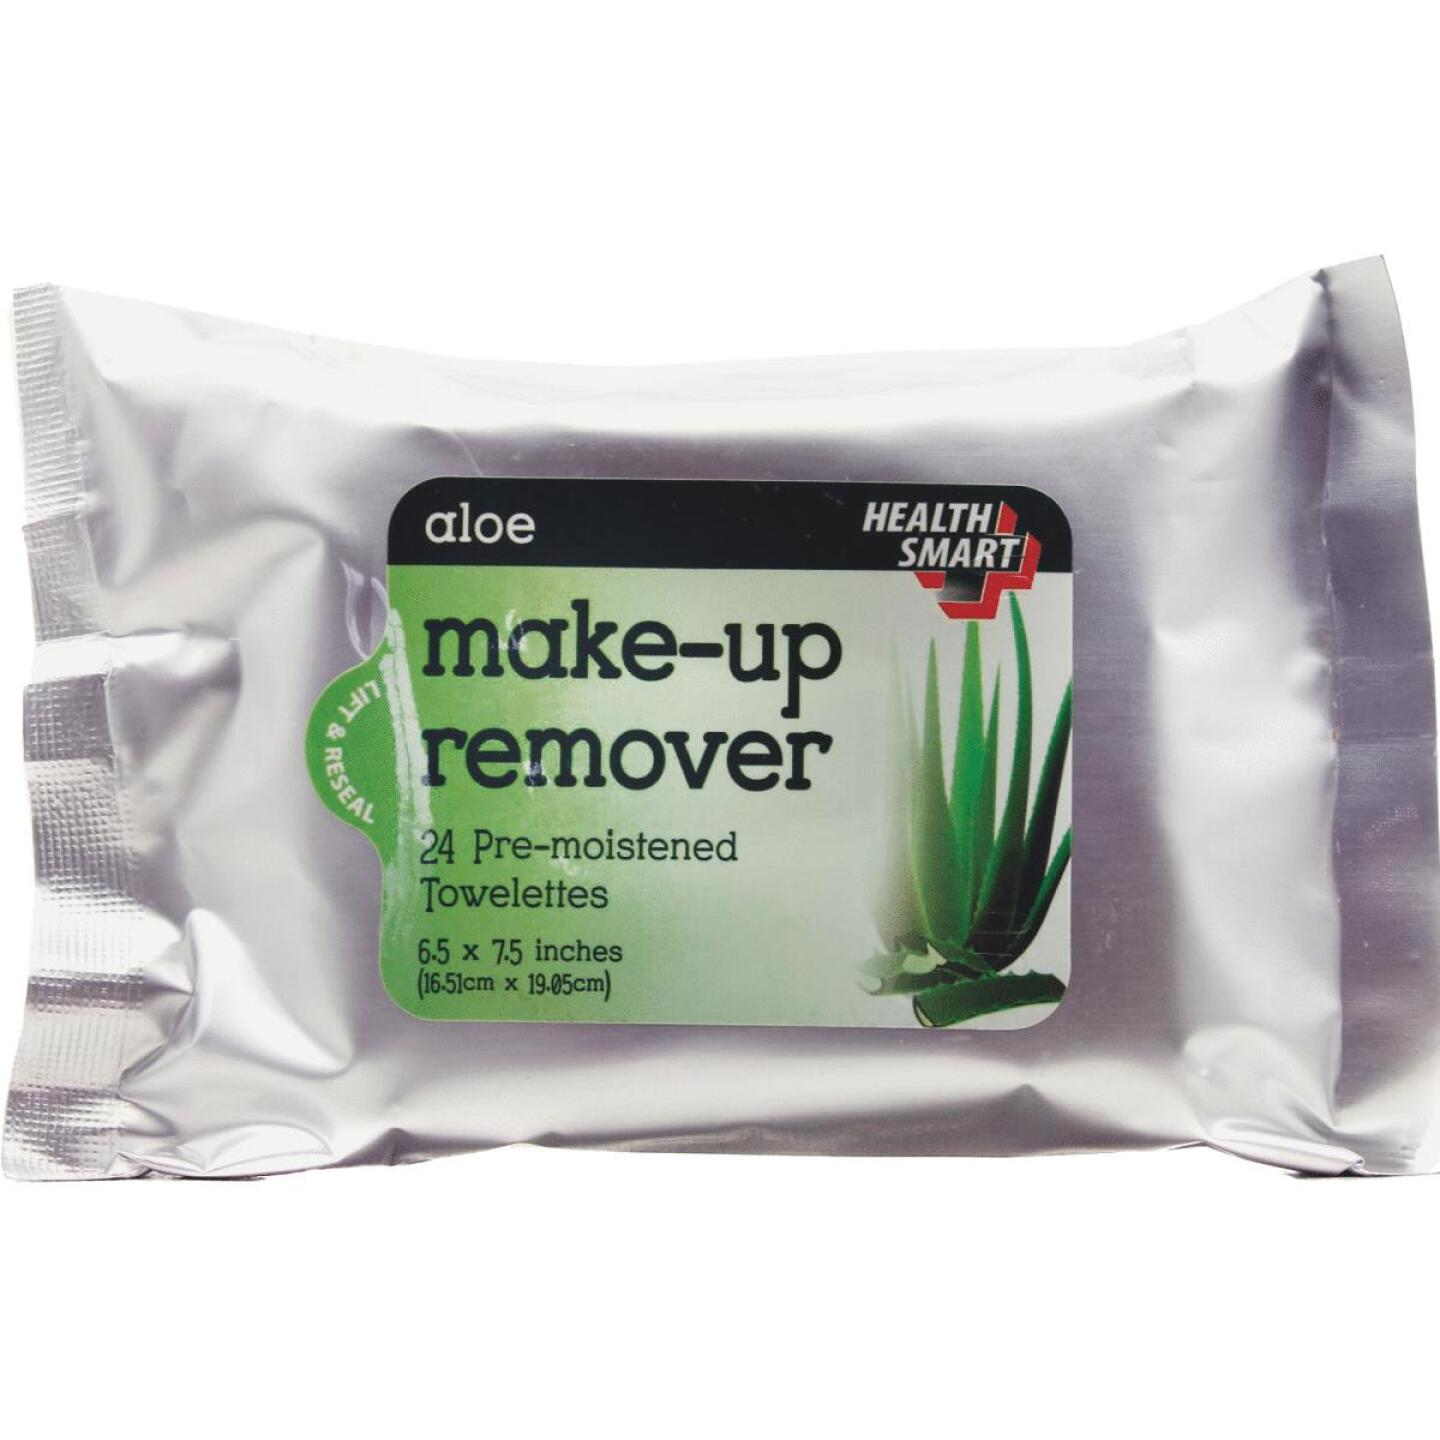 Health Smart Pre-Moistened Towelettes Make-Up Remover (24 Ct.) Image 1